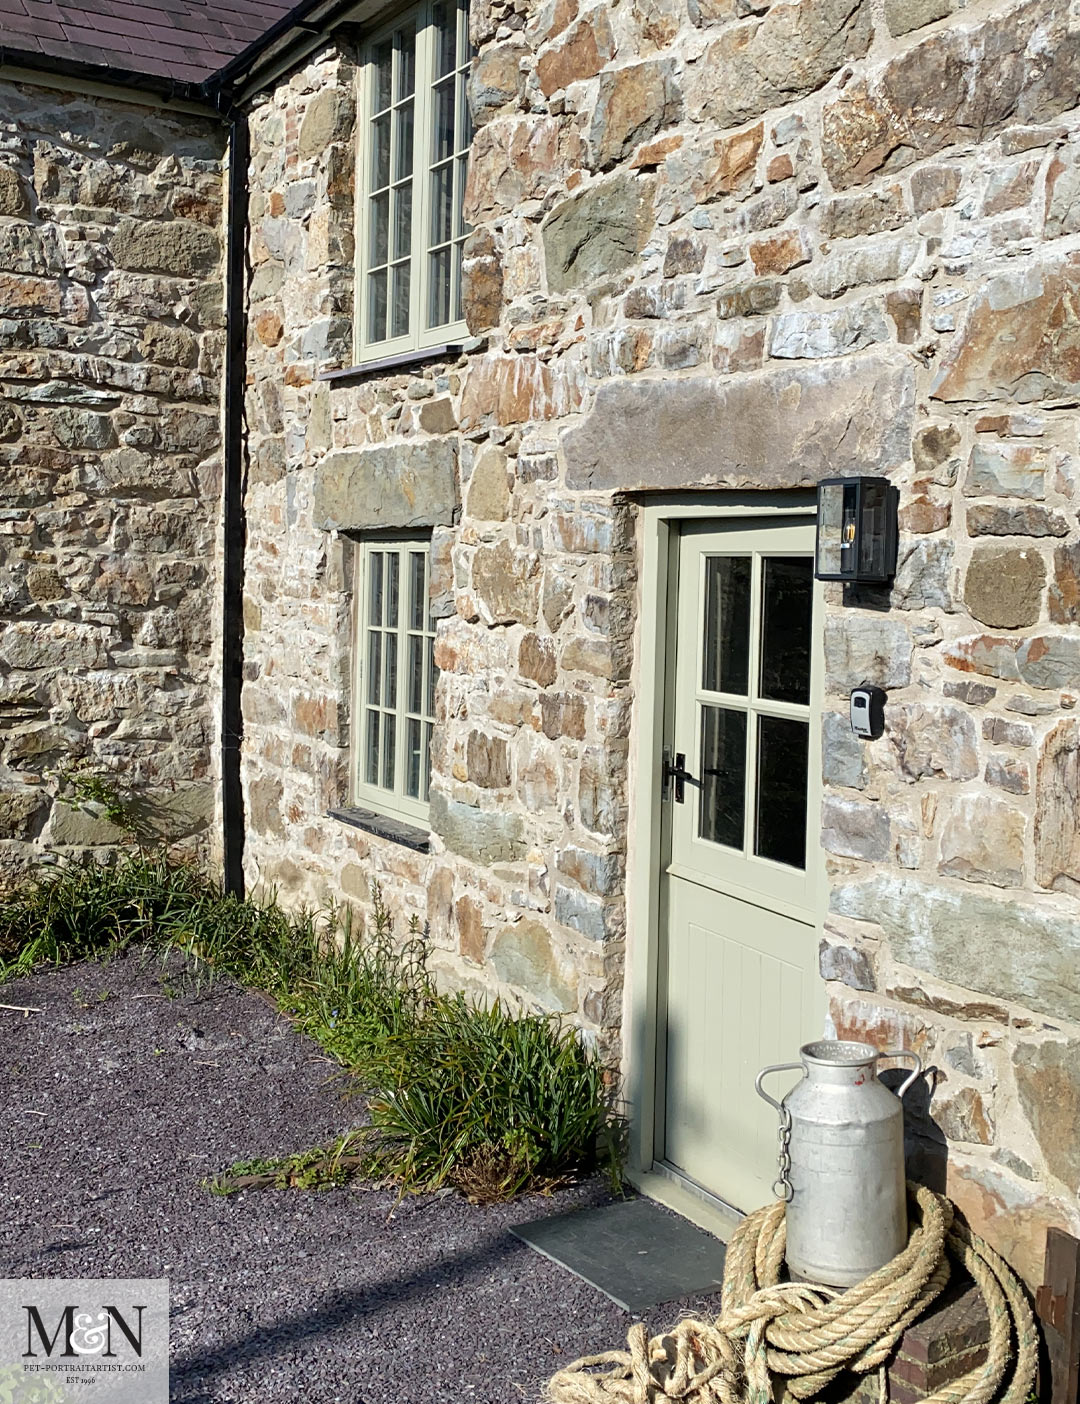 Melanie's April Monthly News - holiday cottage where we stayed.